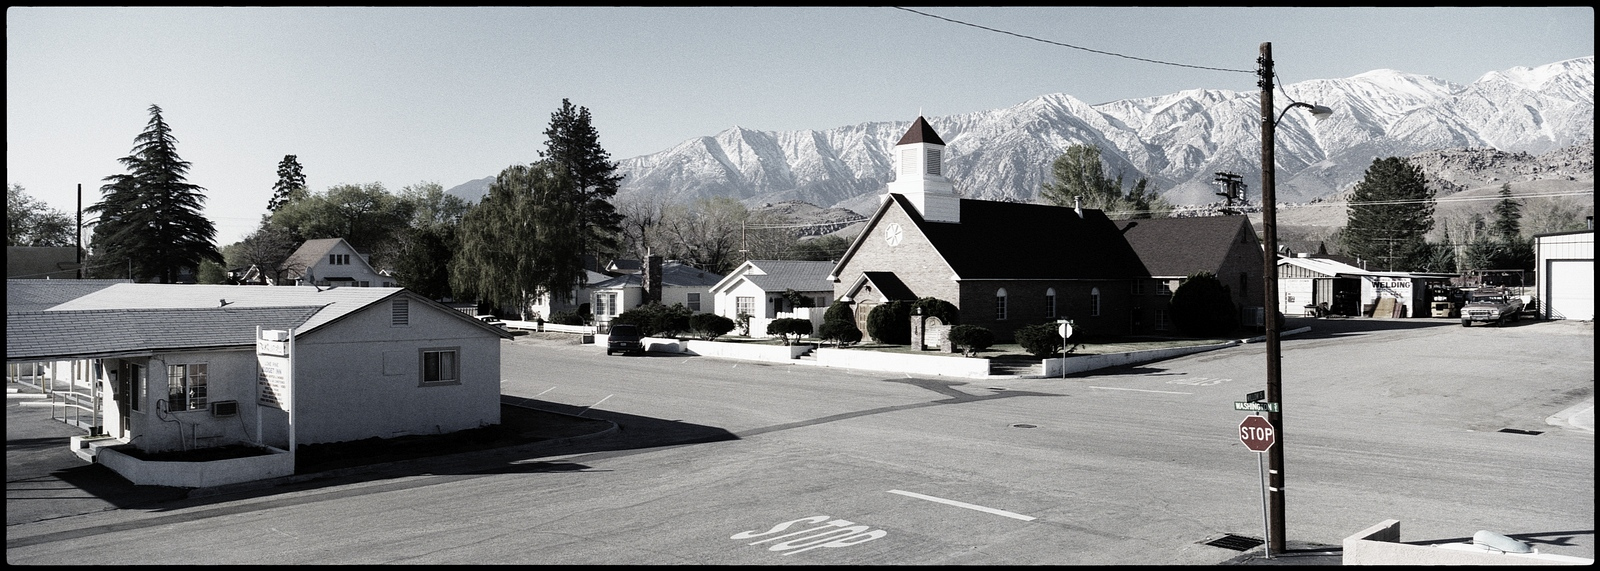 Lone Pine, CA, USA.All pictures are © Cyril Fakiri - No use without permission.